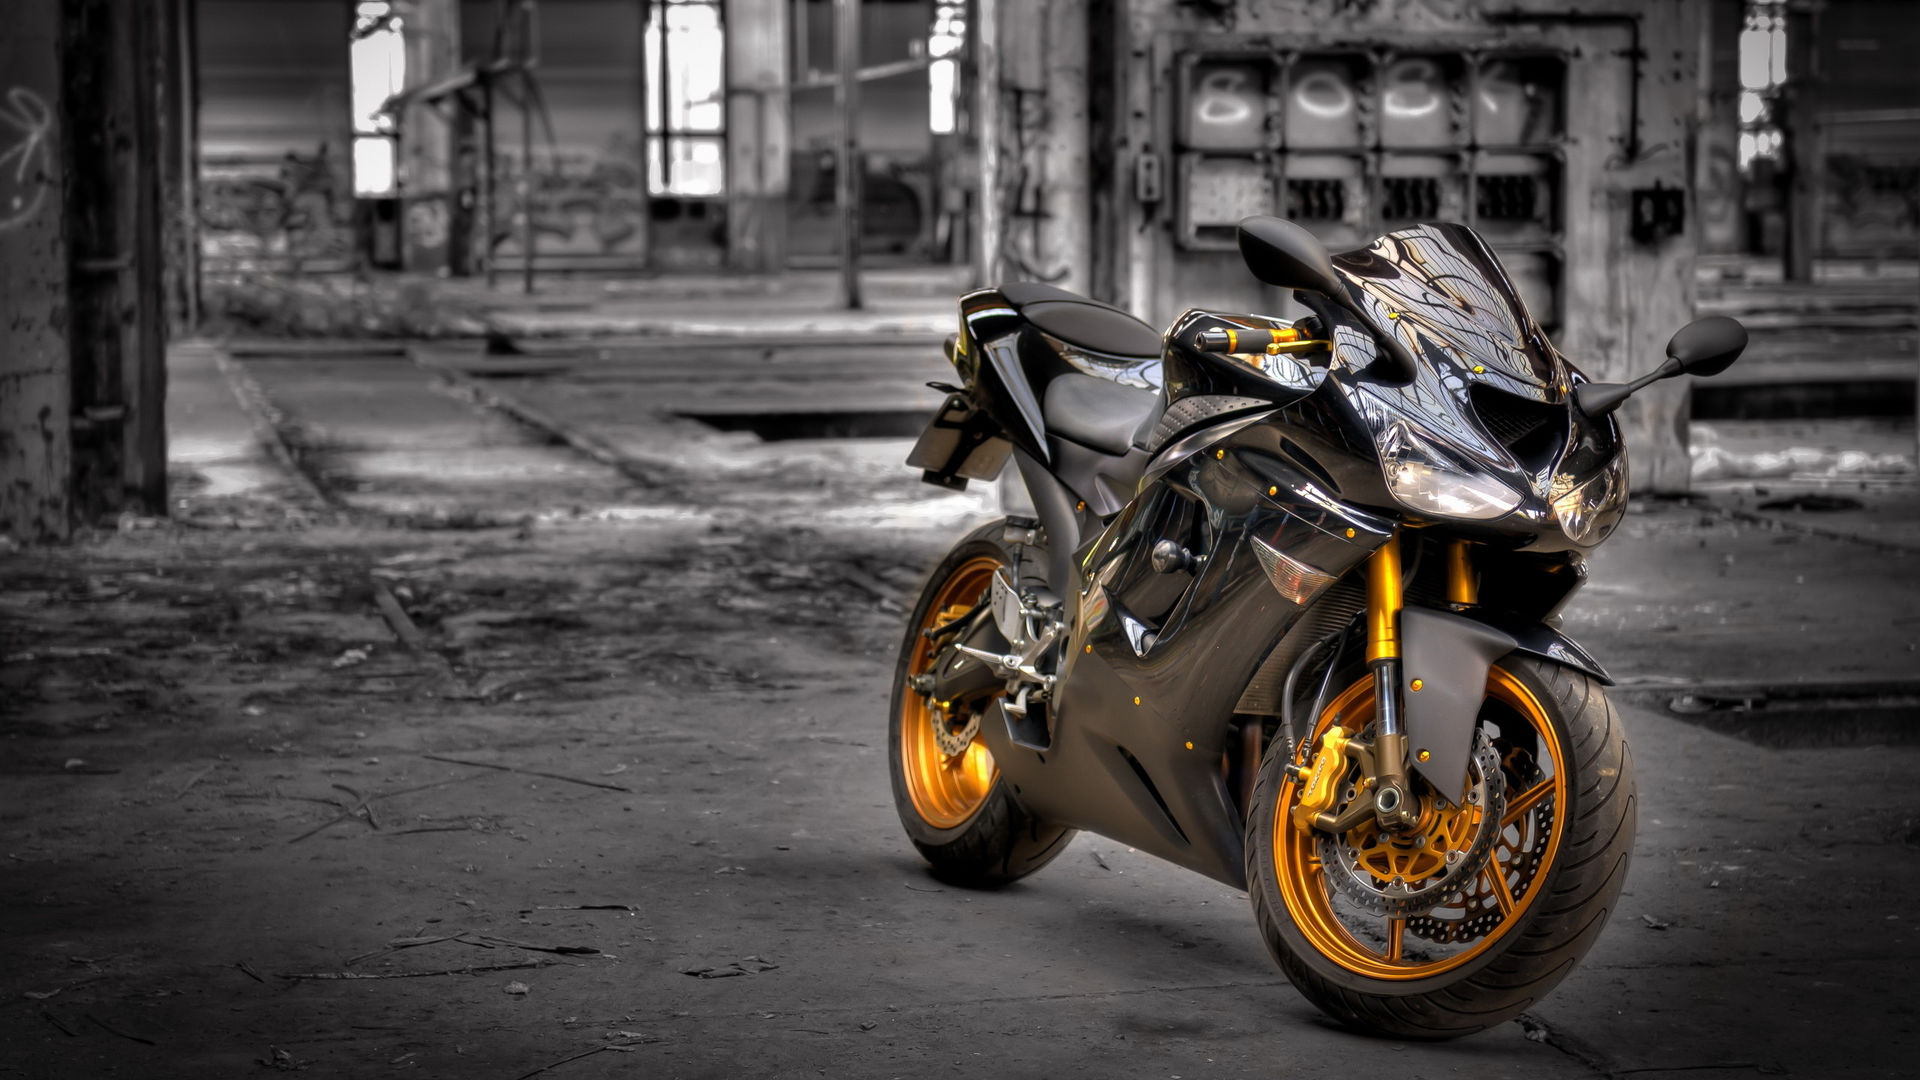 motorcycles photo wallpapers - photo #37